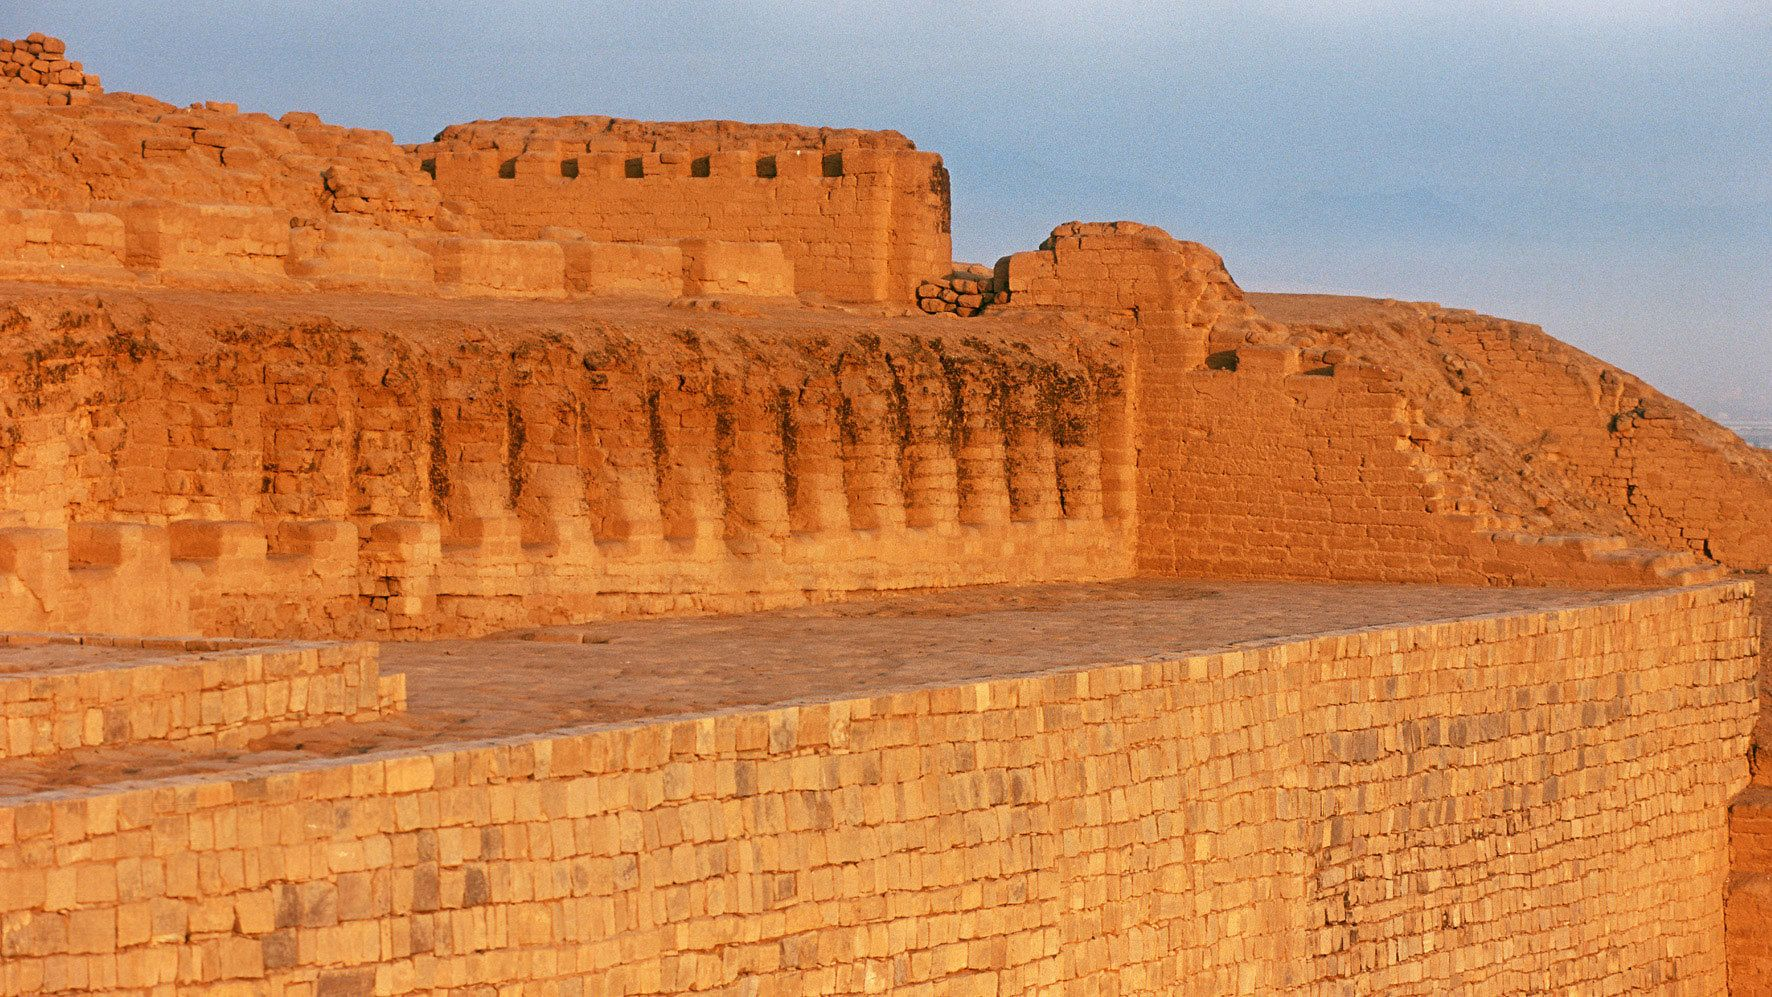 The incredible Pachacamac Ruins